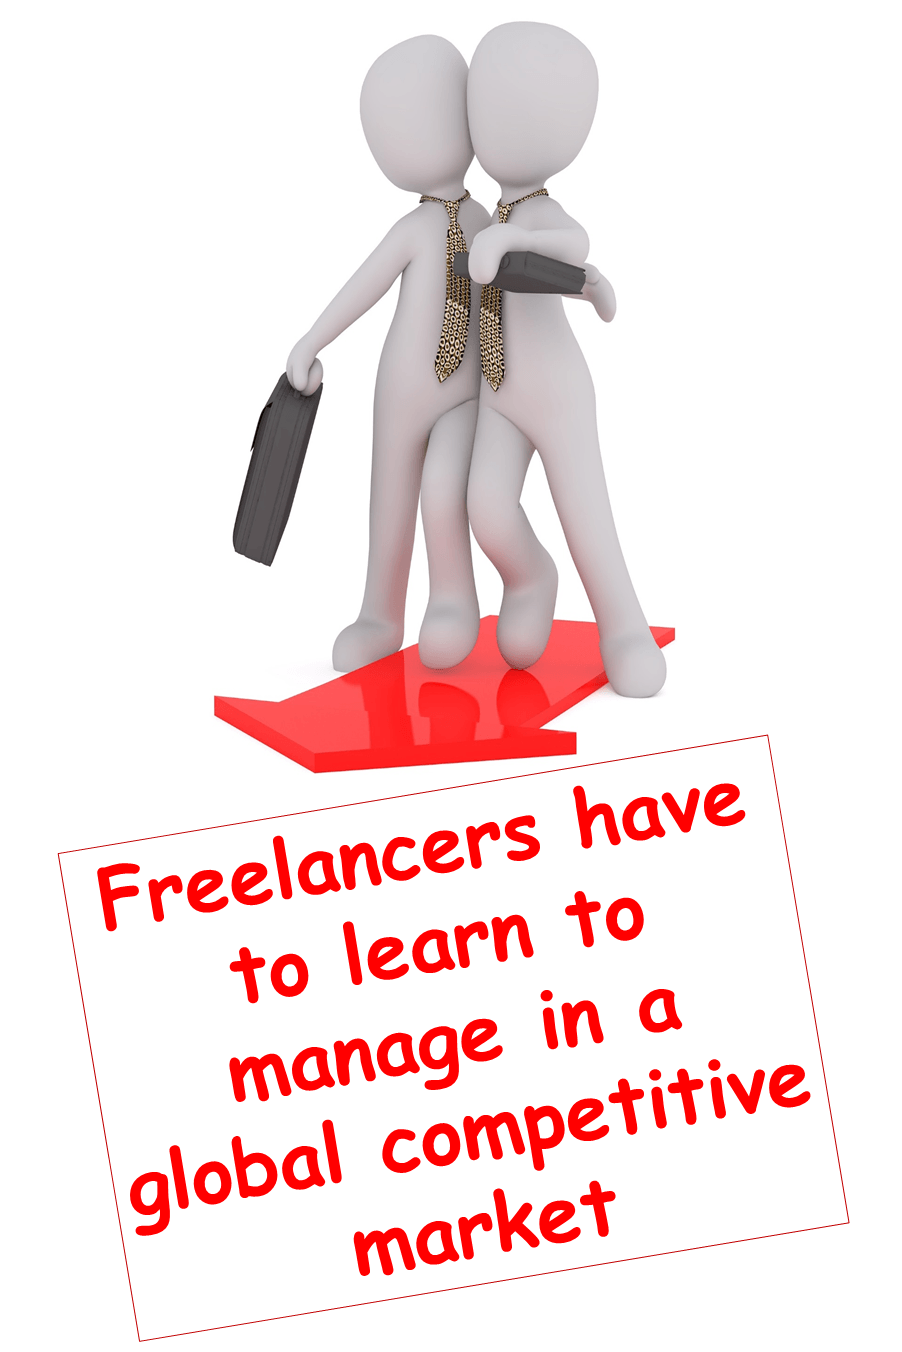 Freelancers have to learn to manage being in a global competitive market. It is not easy being a caring parent and having to make the decision to return to work when your children are young.